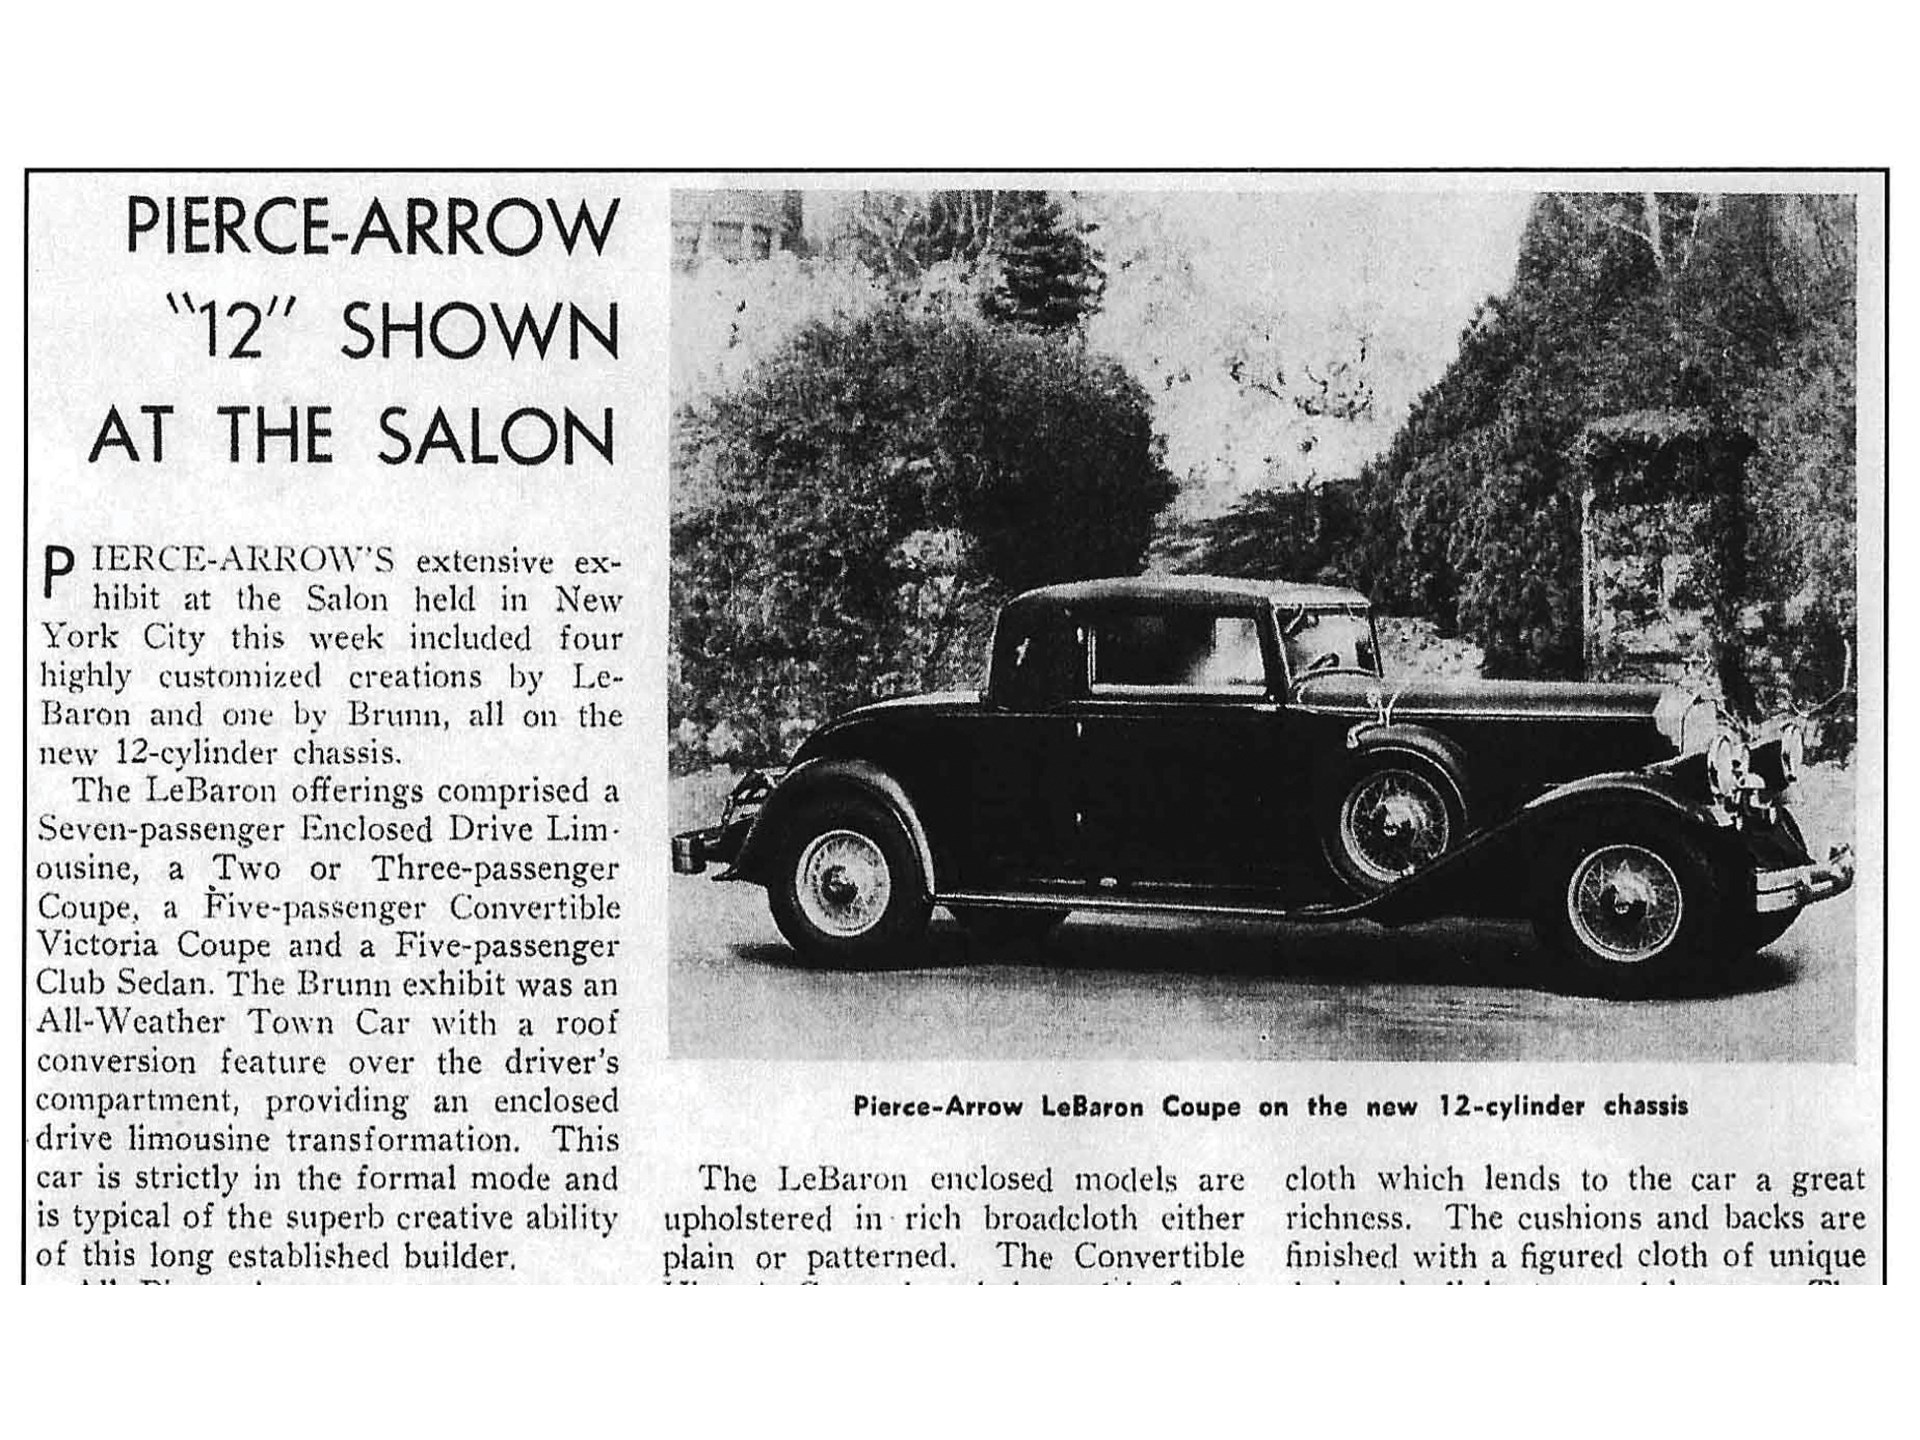 A period article confirming the car's appearance at the New York Auto Show.